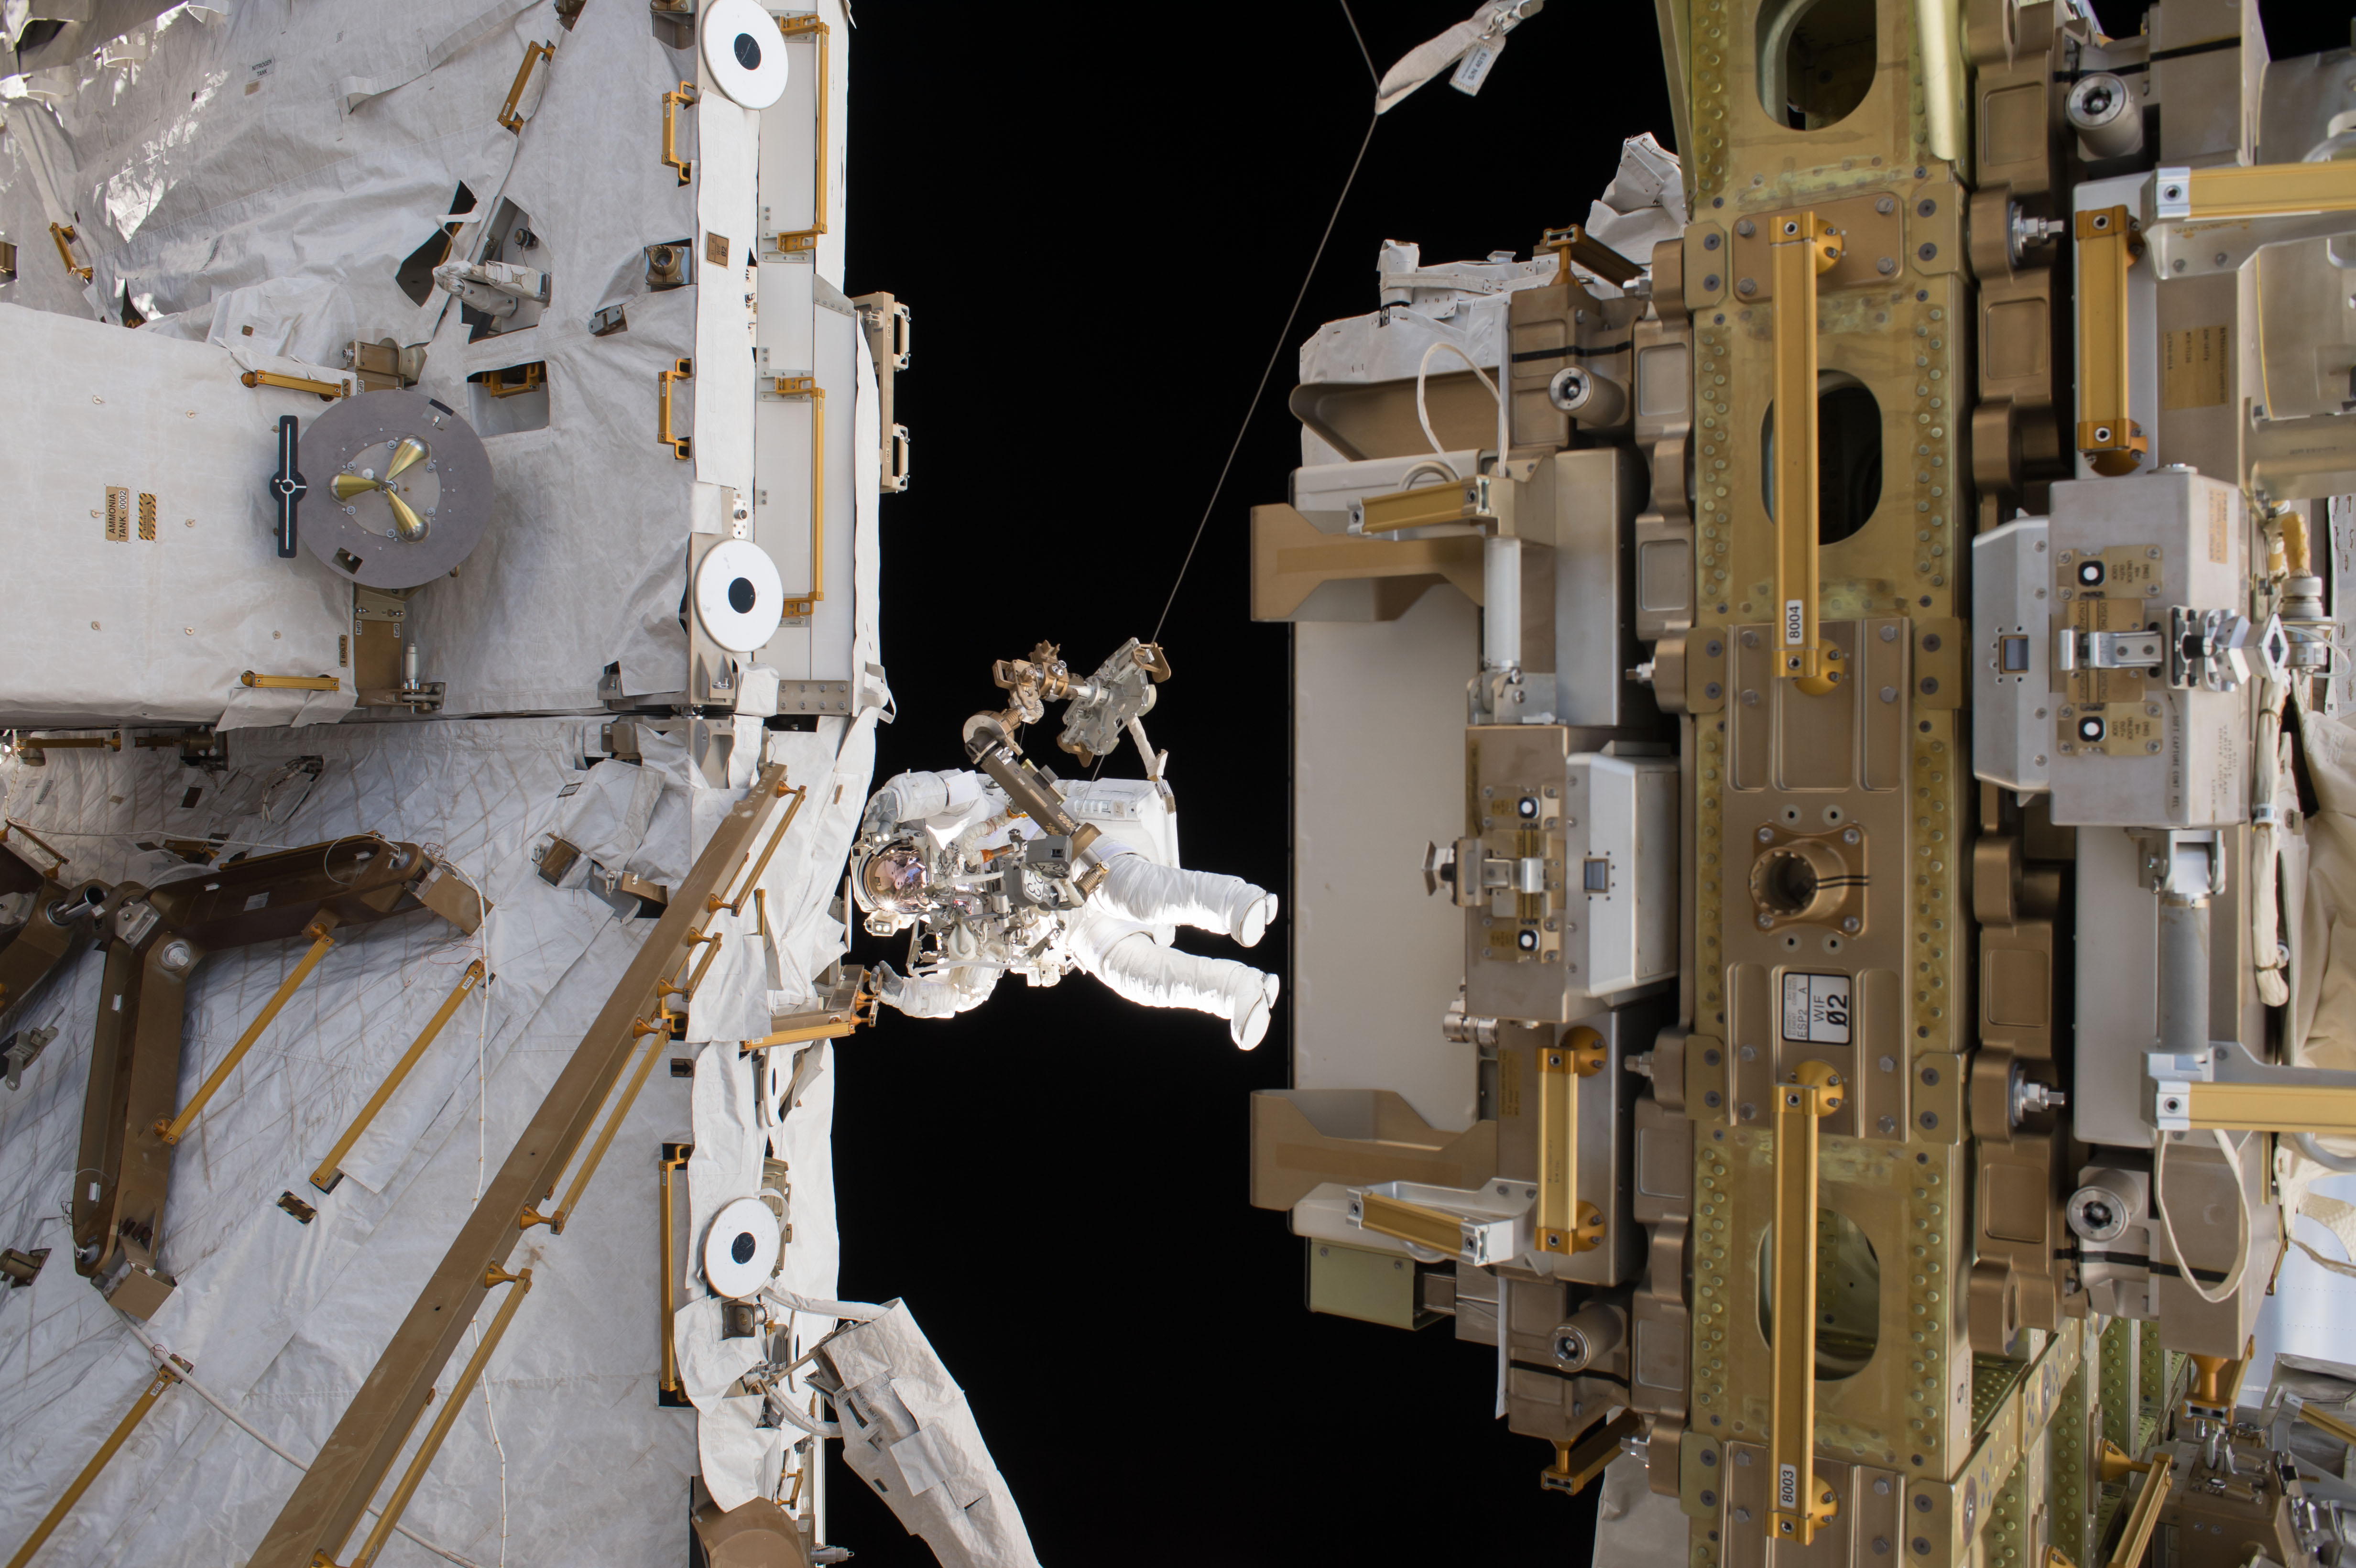 Free download high resolution image - free image free photo free stock image public domain picture -Spacewalks Prepare Station for Arrival